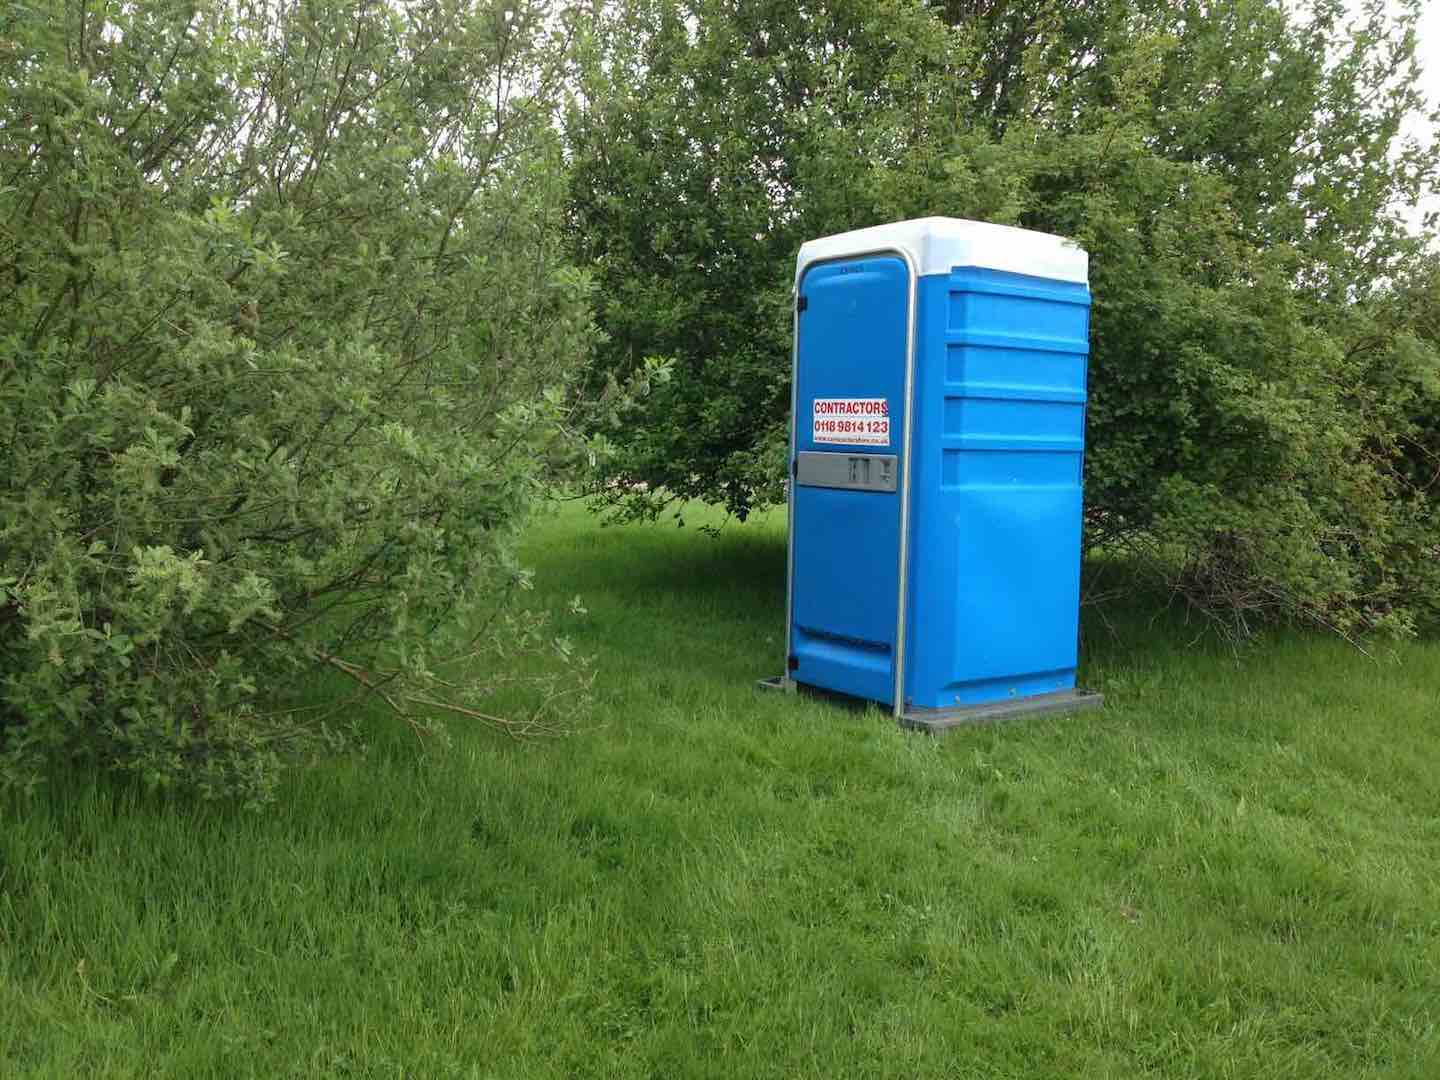 Golfer sues after being hit by Portaloo